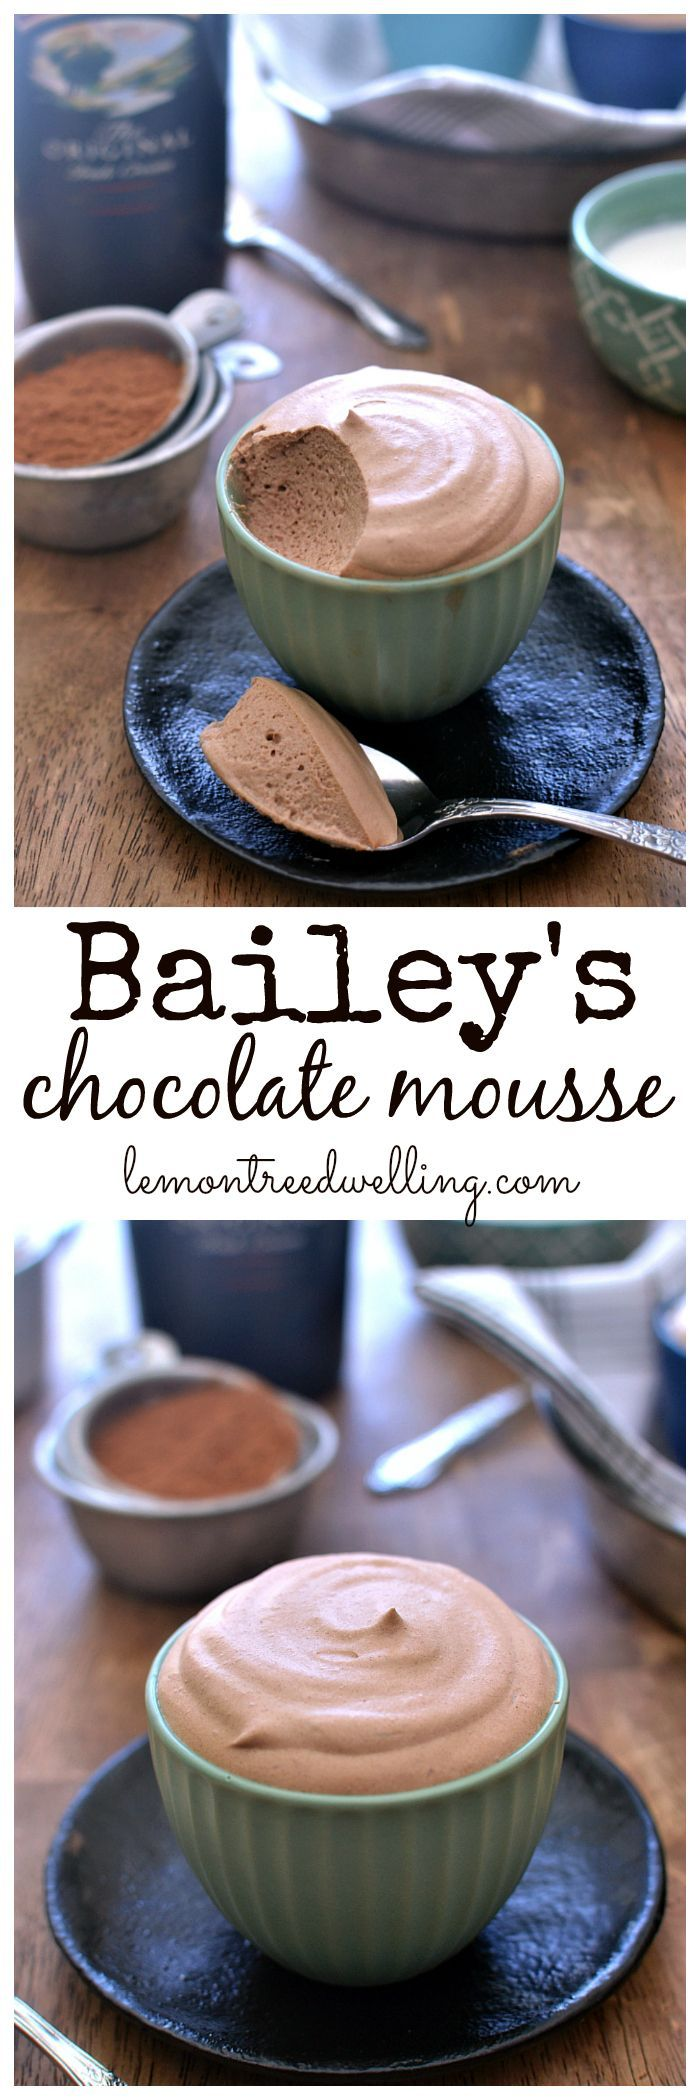 Bailey's Chocolate Mousse - this looks AMAZING for St. Patrick's Day! Nx